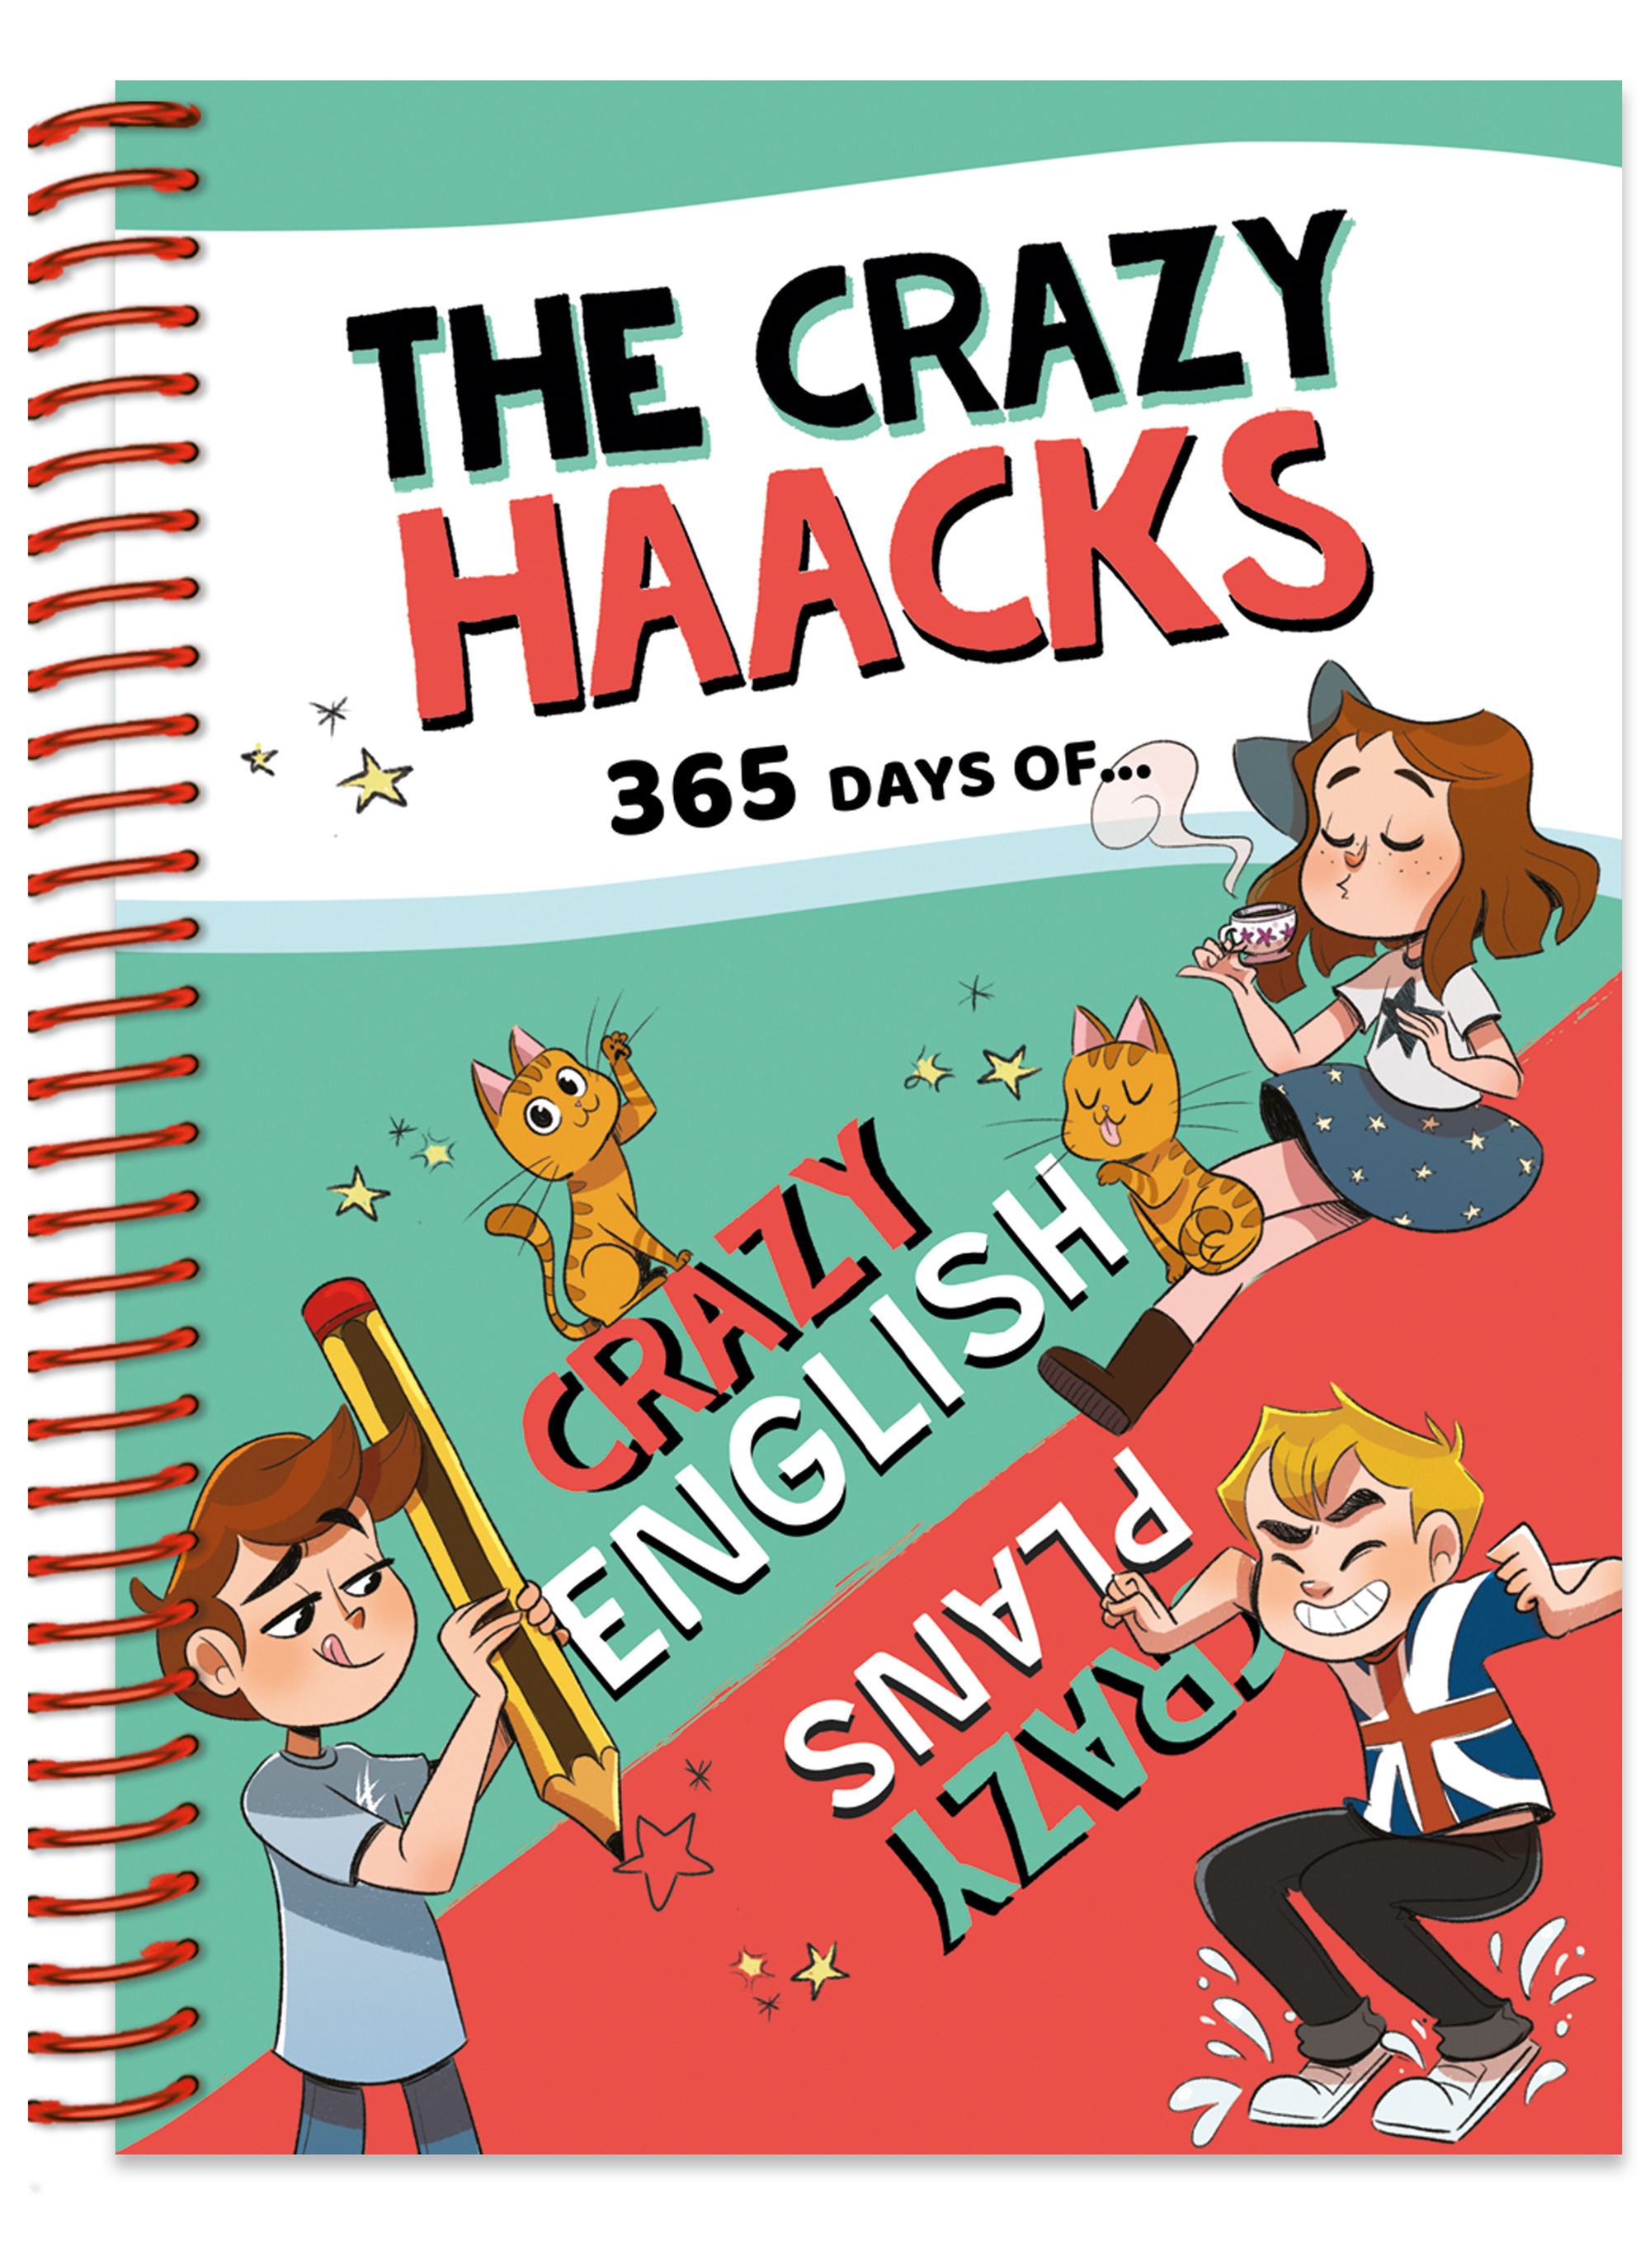 365 DAYS OF CRAZY ENGLISH & CRAZY PLANS